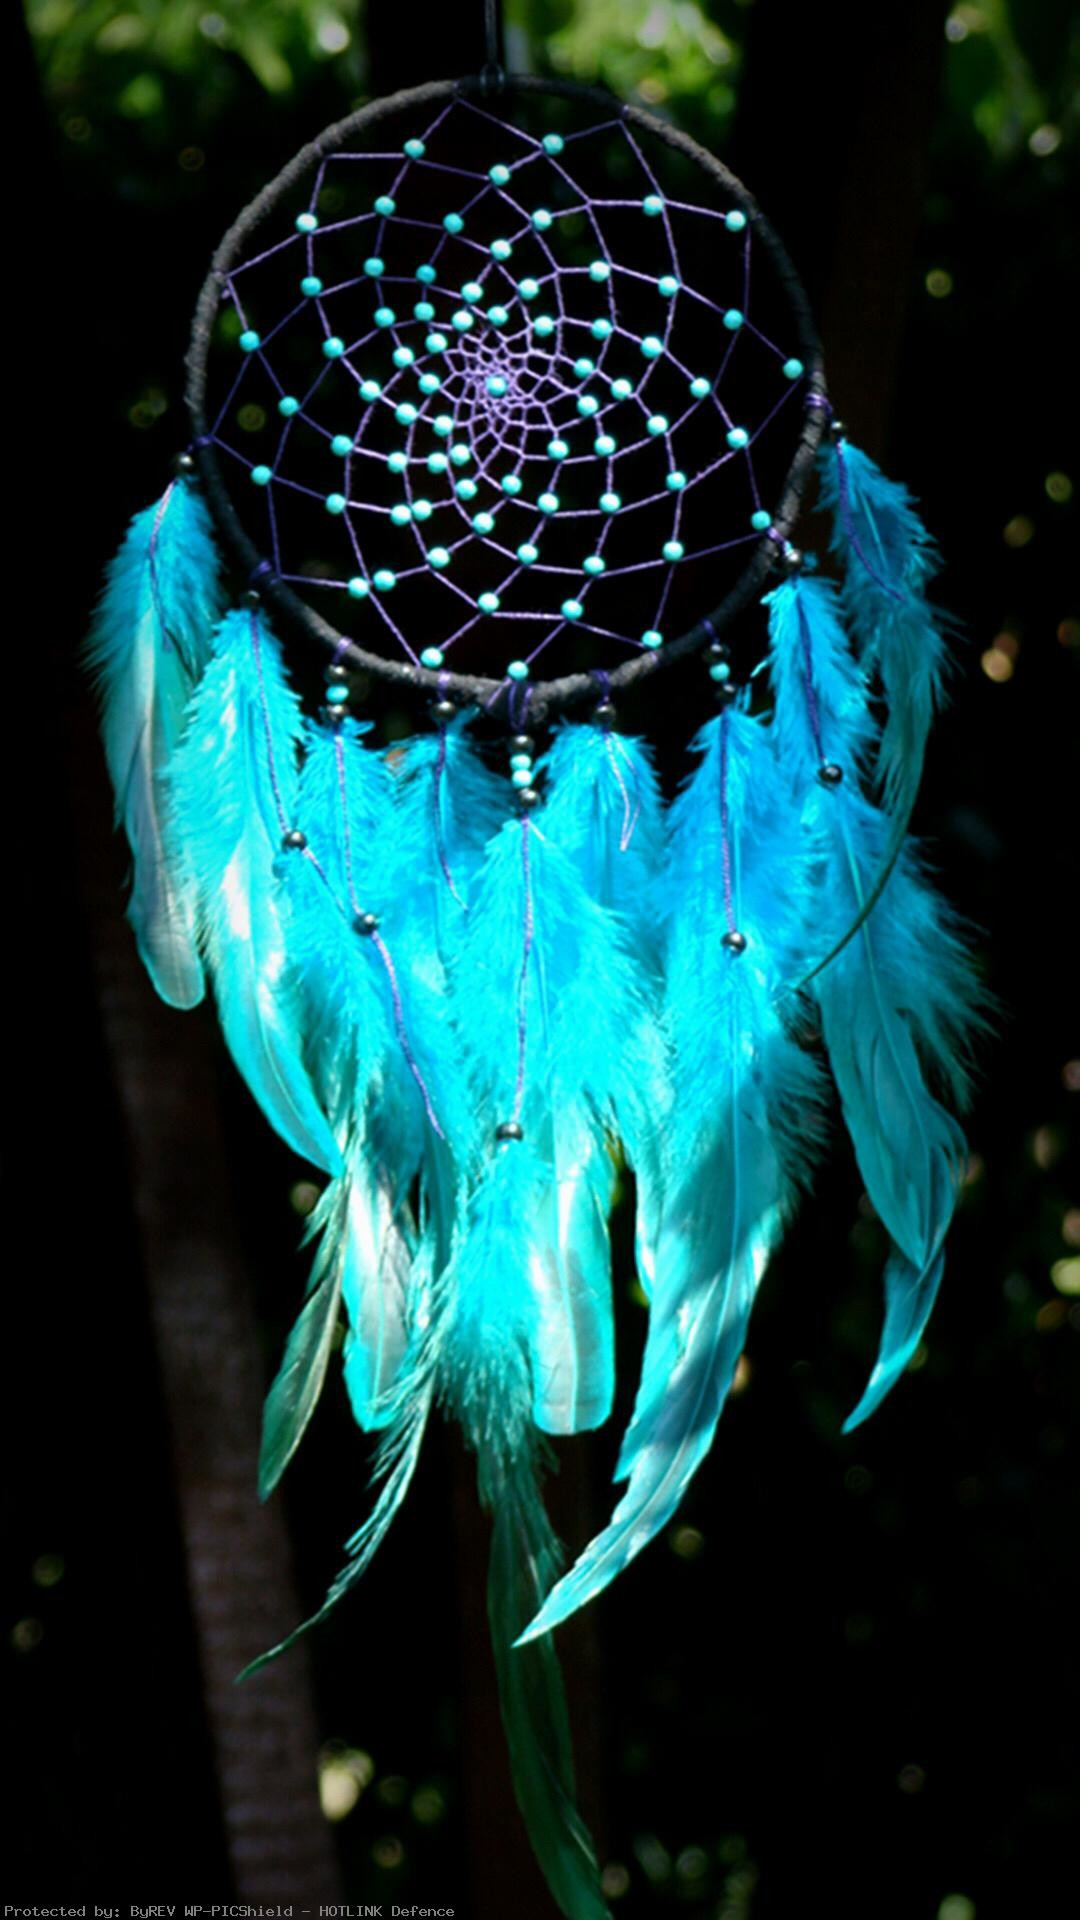 The-light-and-dark-blue-of-the-dreamcatcher-